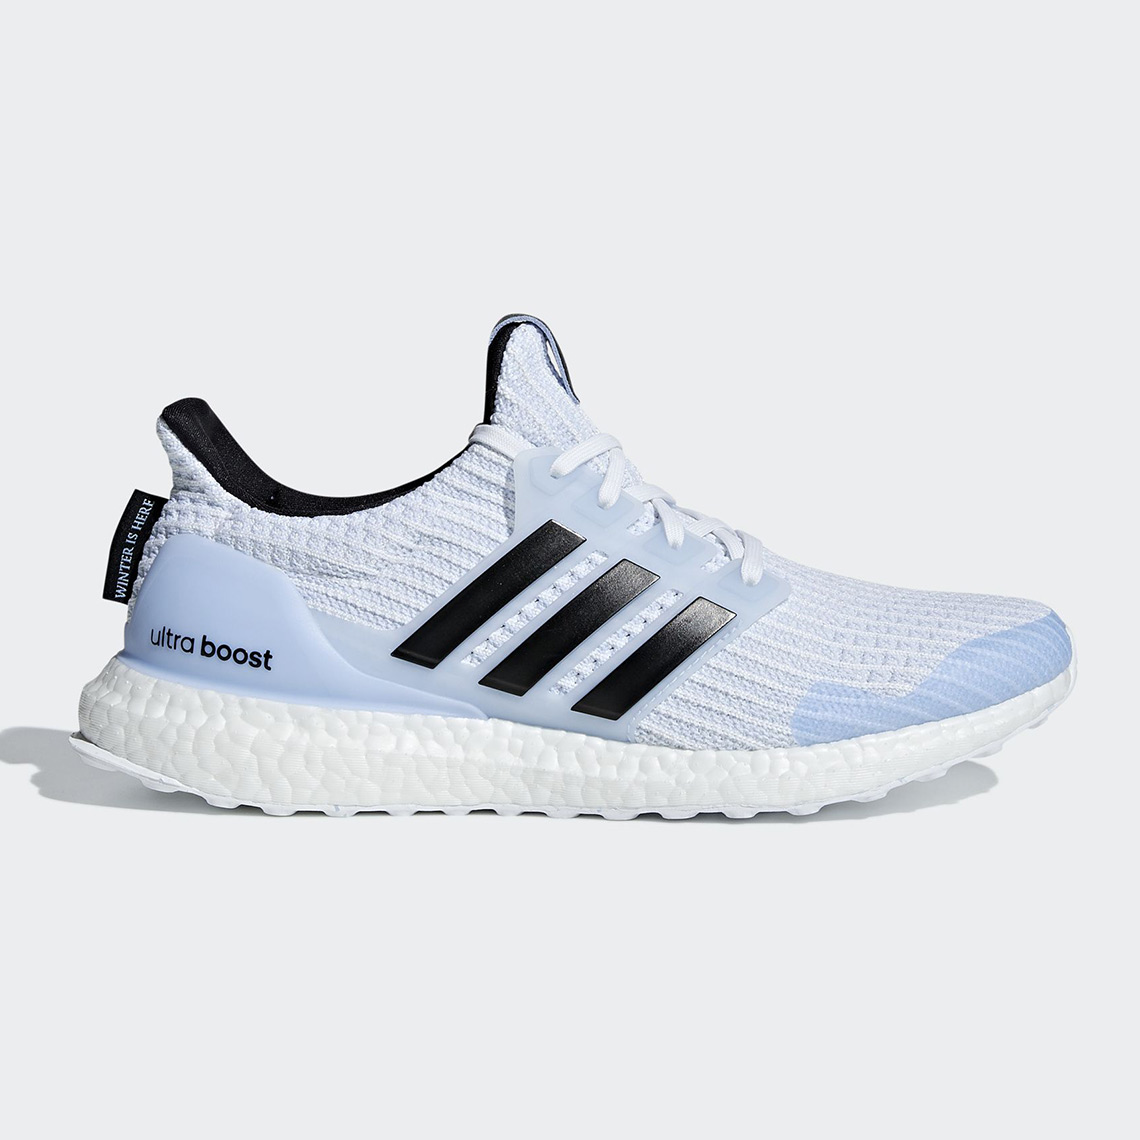 adidas Ultra BOOST Technology | Shoe design sketches, Adidas